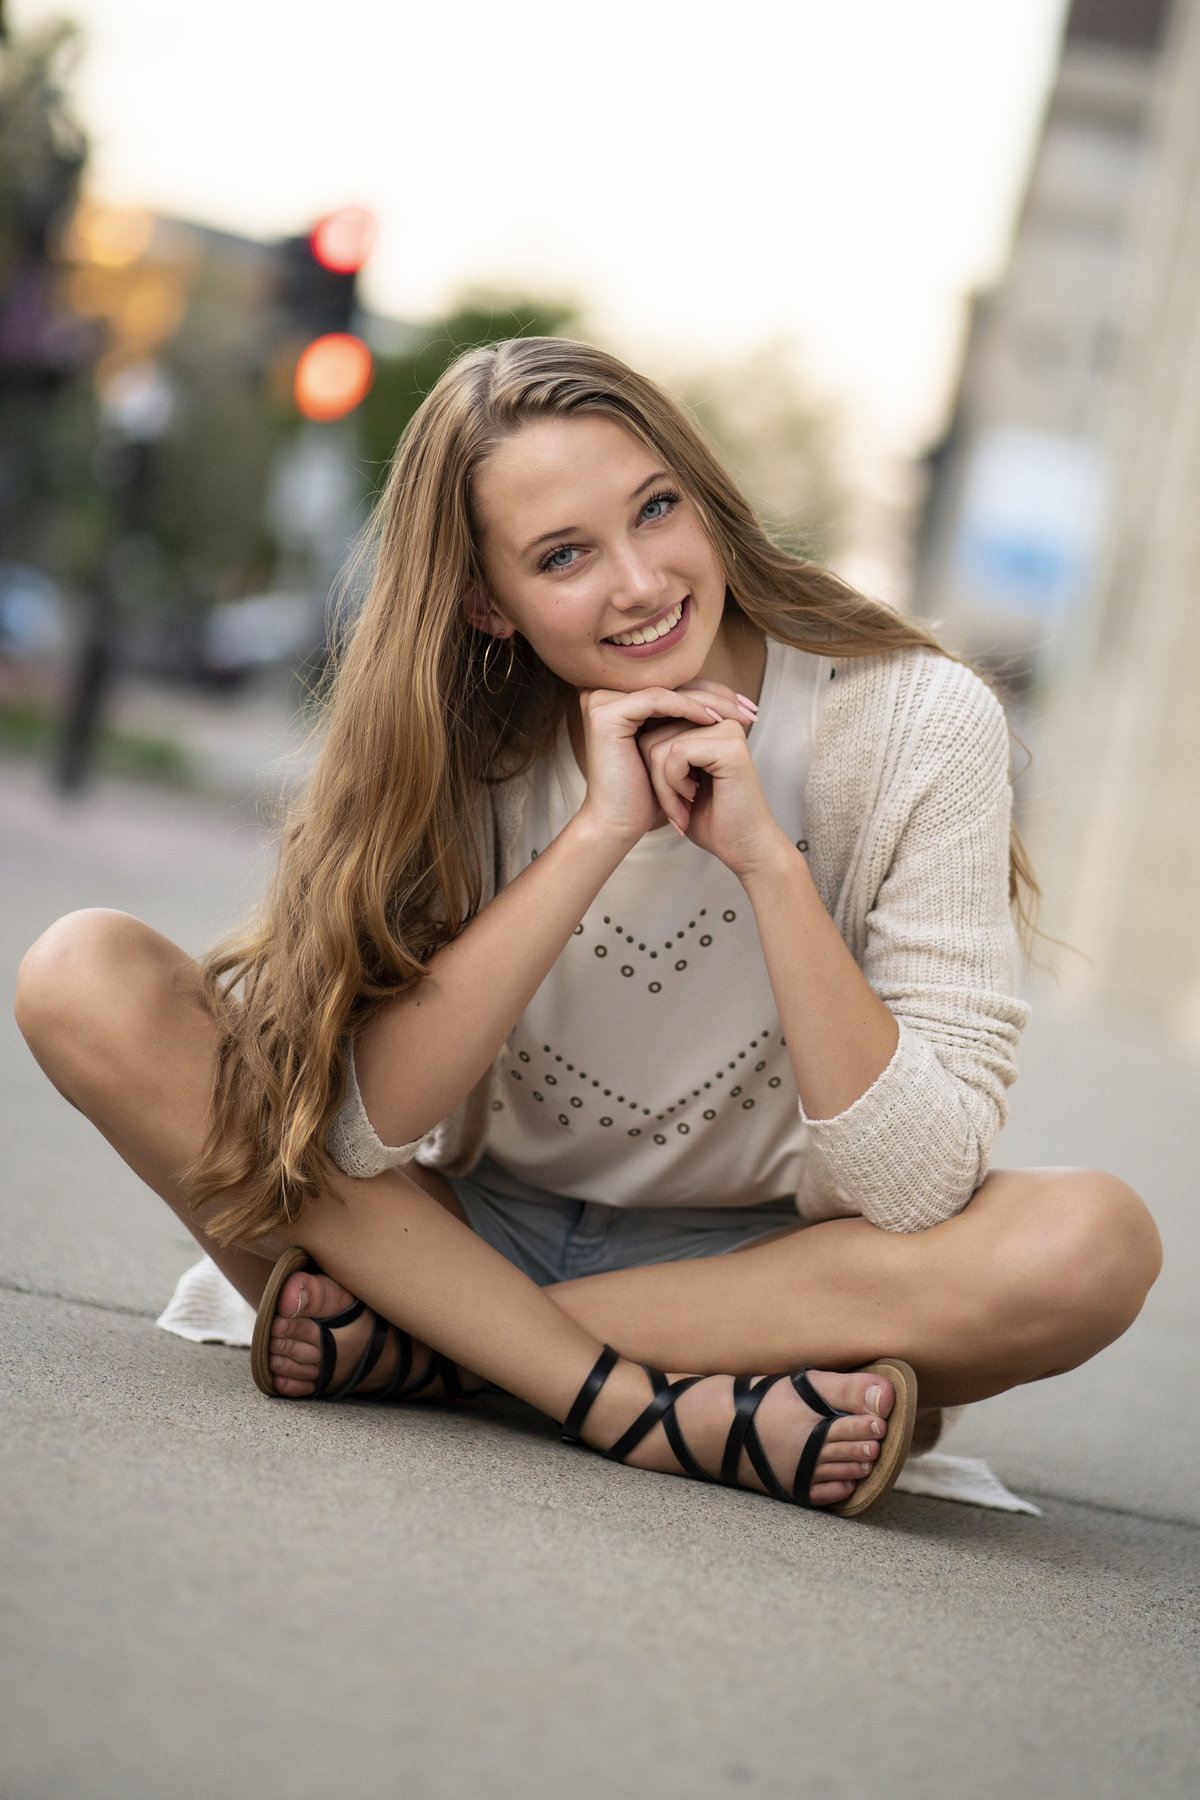 sioux falls south dakota senior photography downtown philips ave girl sitting on sidewalk